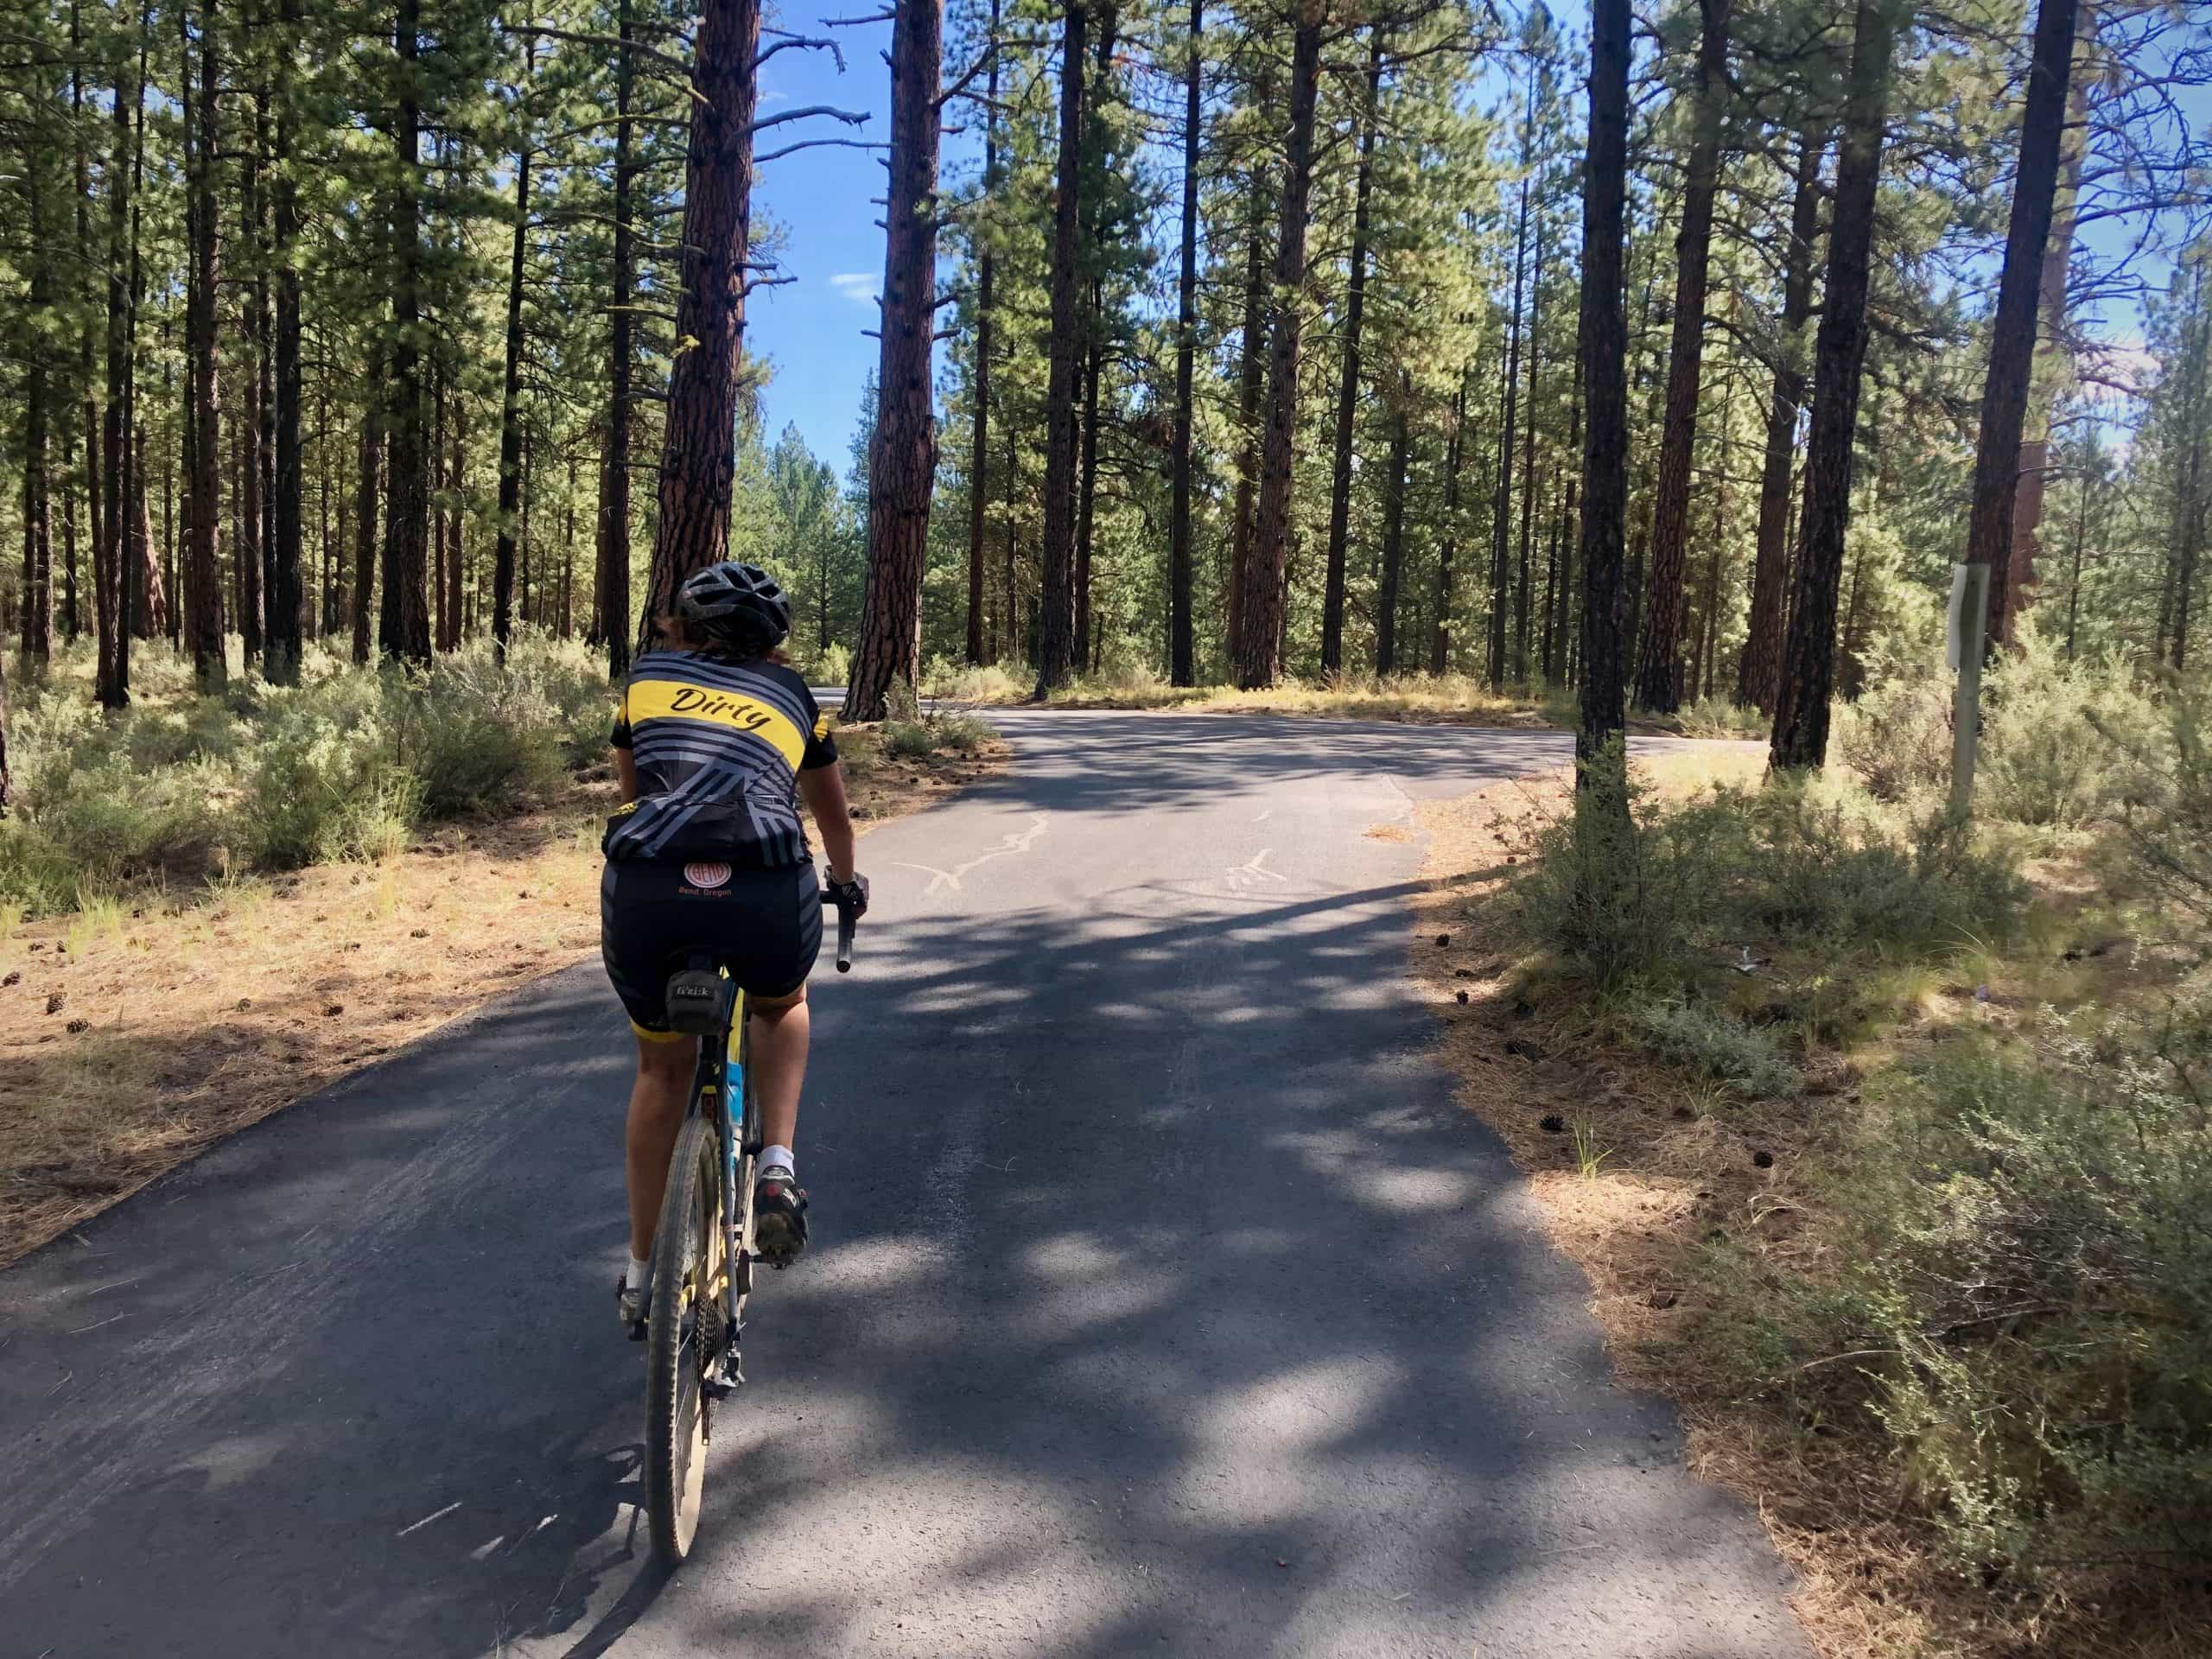 Woman cyclist on paved road in LaPine, Oregon.